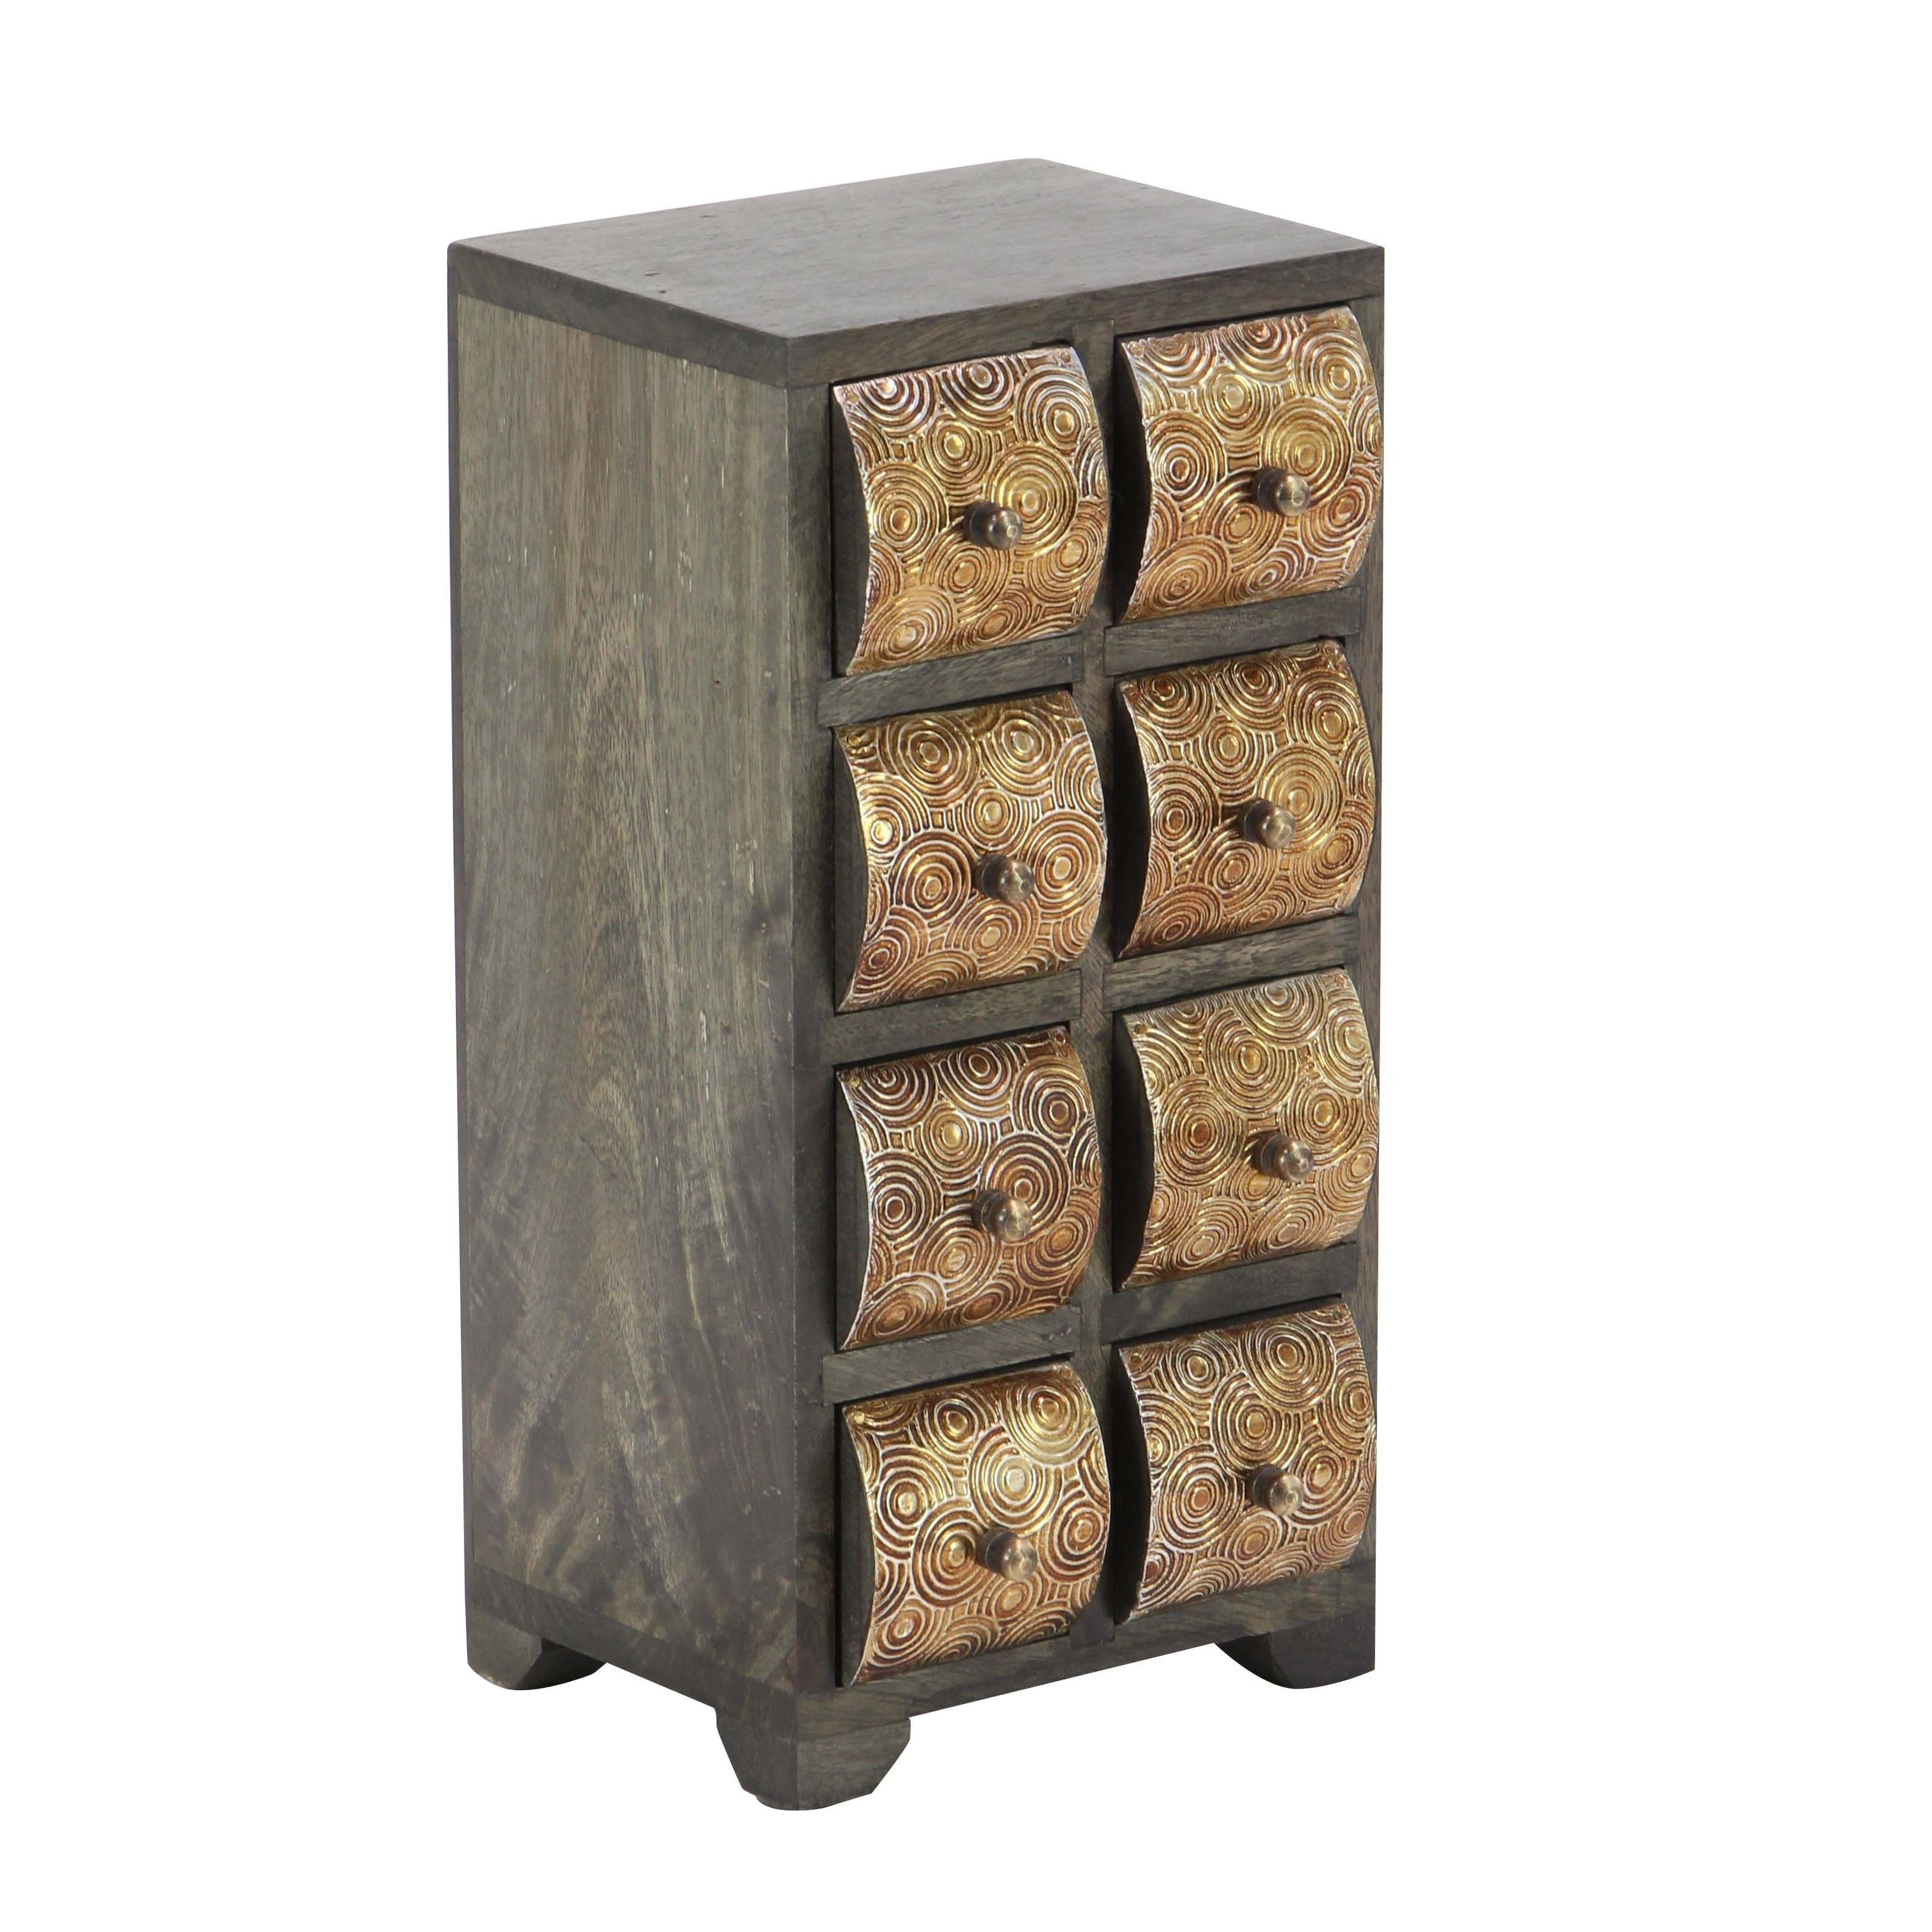 Studio 350 Rustic Mango Curved Paneled 8Drawer Vertical Jewelry